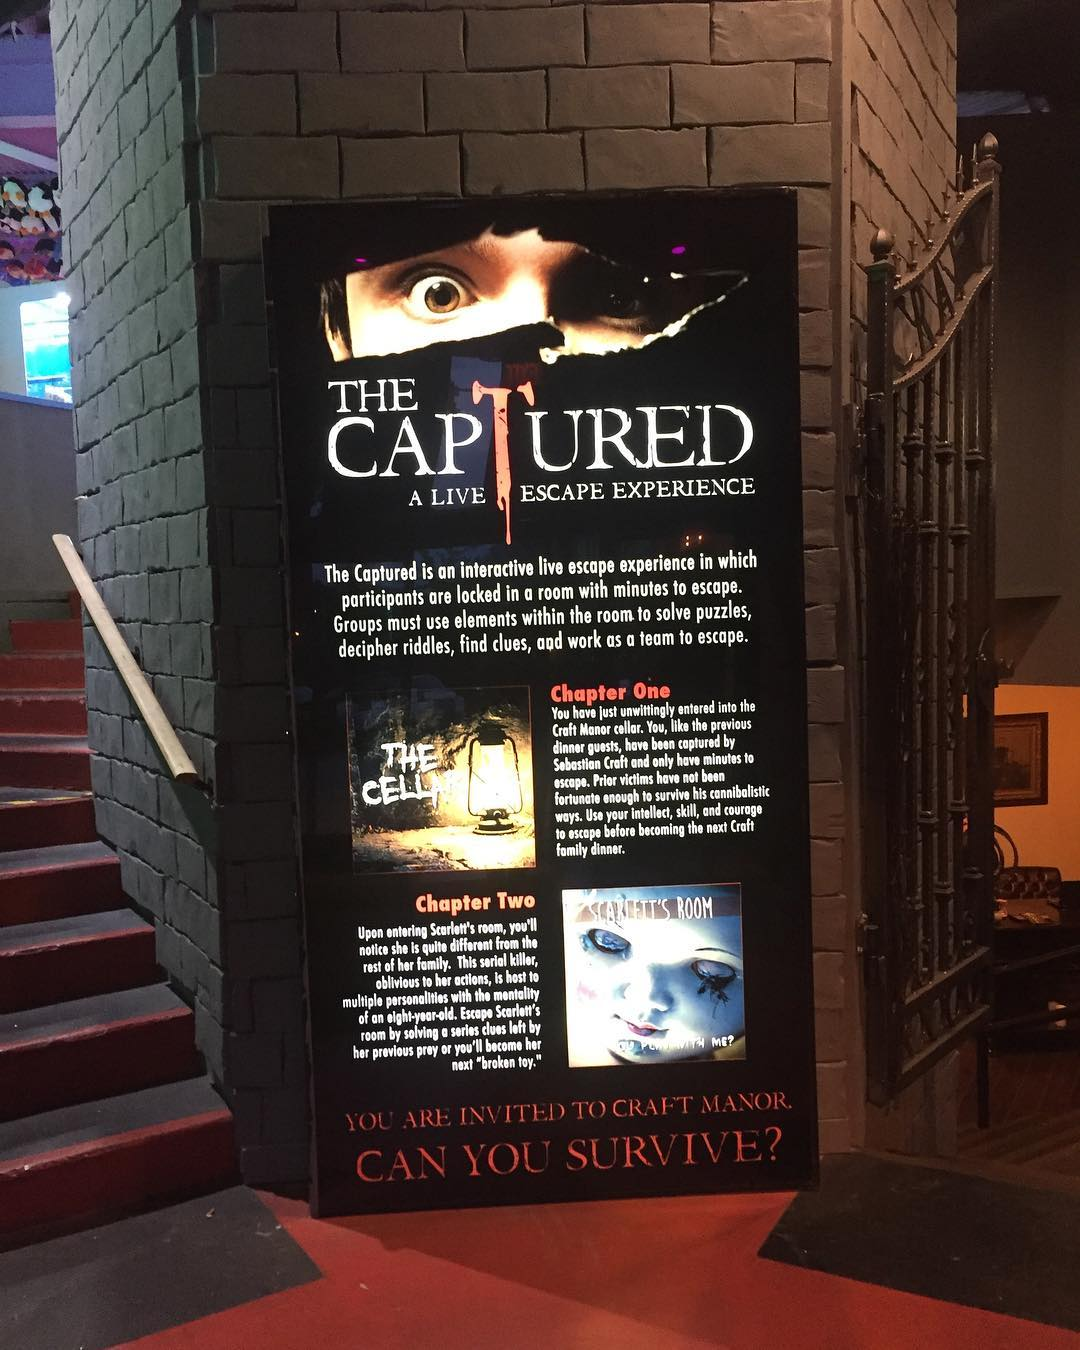 Gatlinburg Things To Do - The Captured – A Live Escape Experience - Original Photo